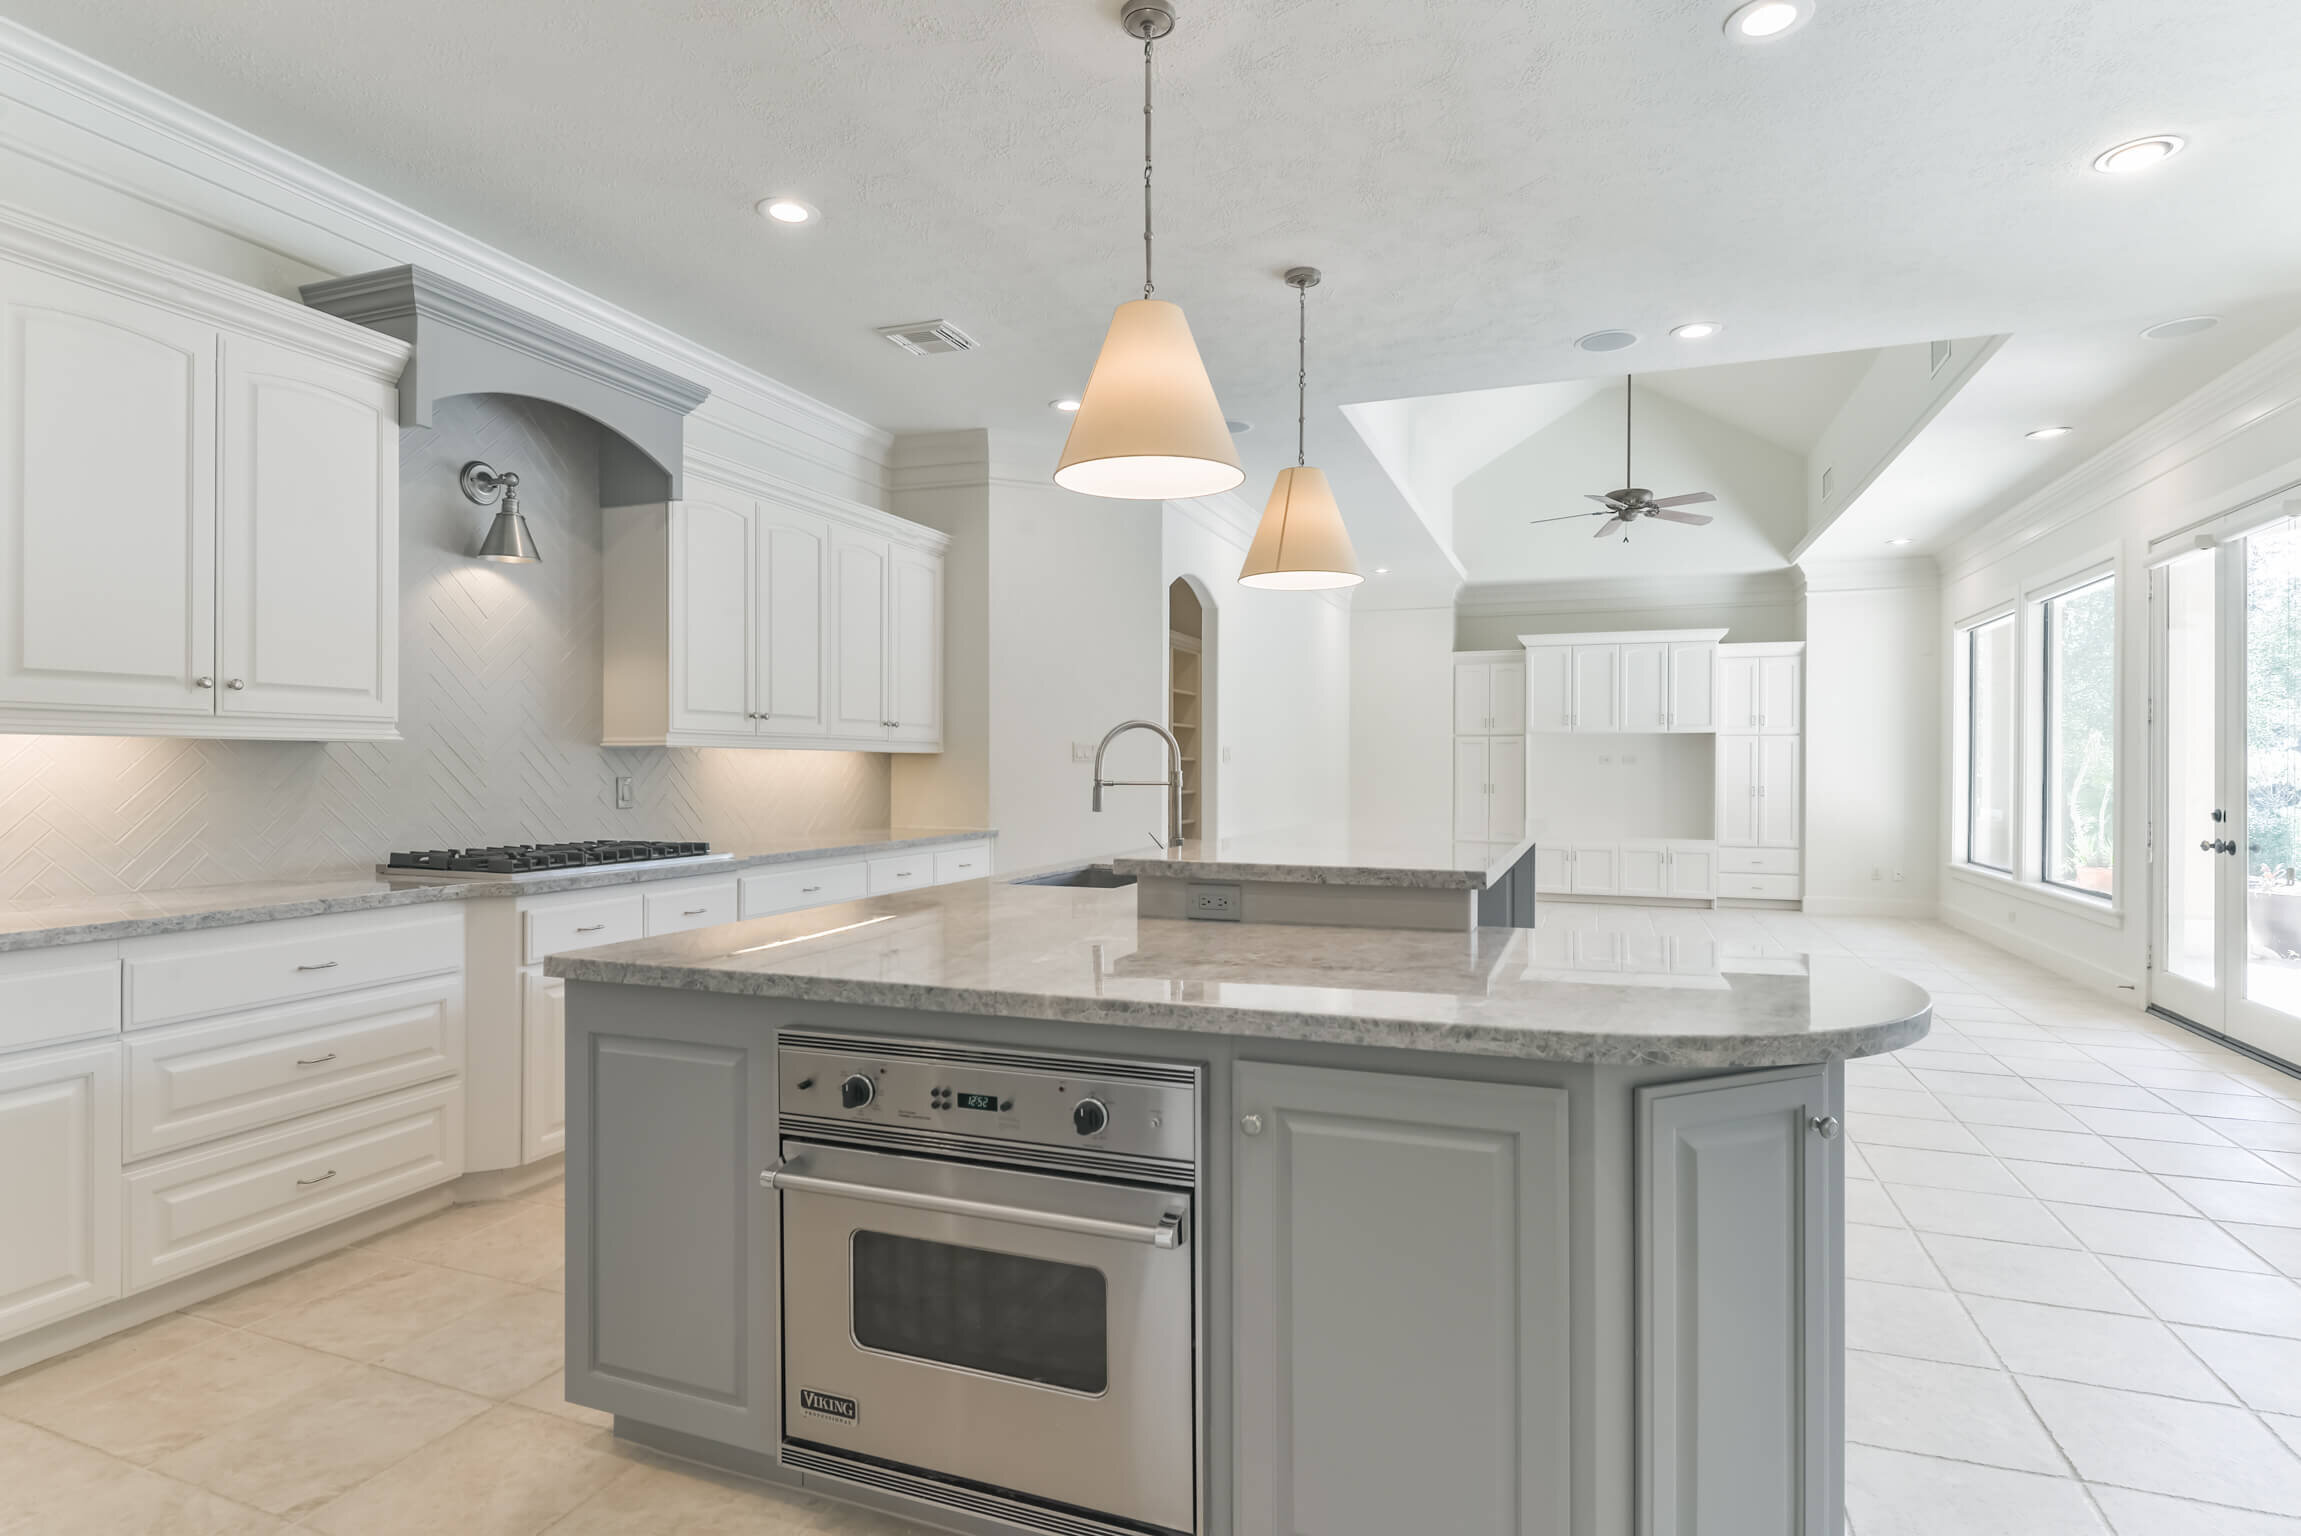 Careful attention was given to the cuts needed for the slabs in this kitchen remodel so we didn't waste any material. Leaving the bar high made more sense here for best use of remodeling dollars. Carla Aston, Designer | #whitekitchen #kitchenbar #kitchendesign #kitchencountertop